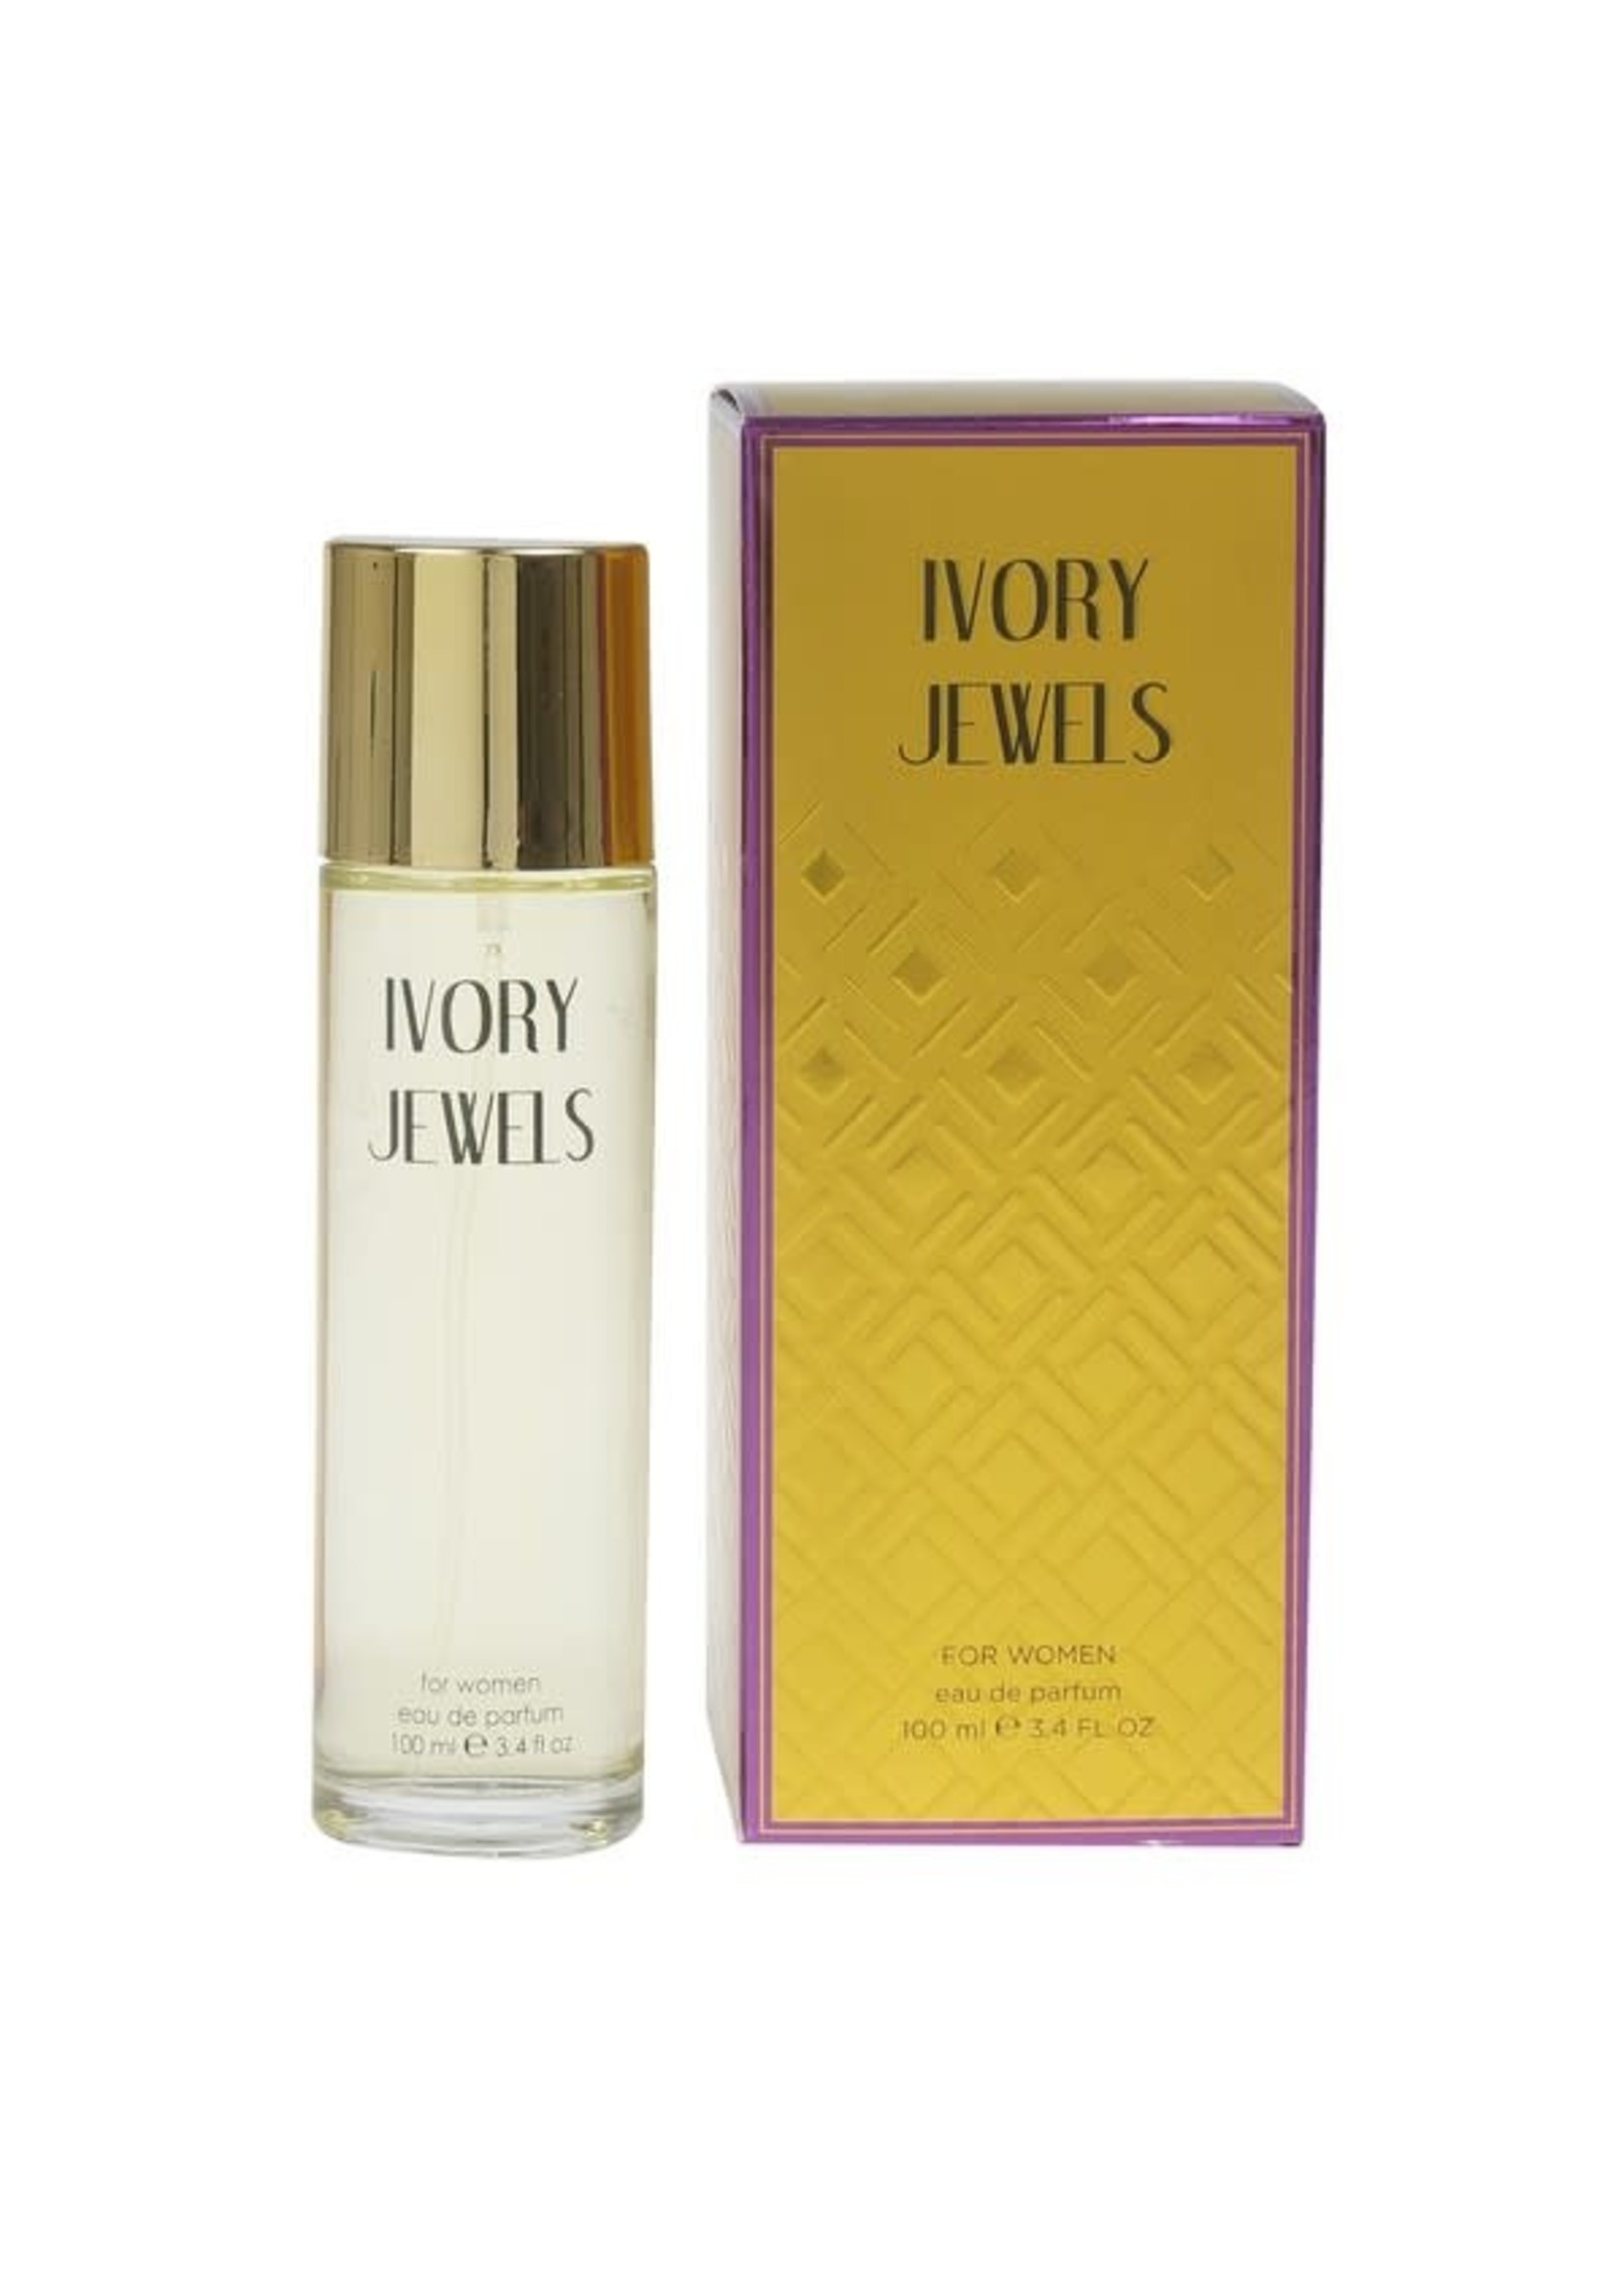 IVORY JEWELS Women's EDP Perfume